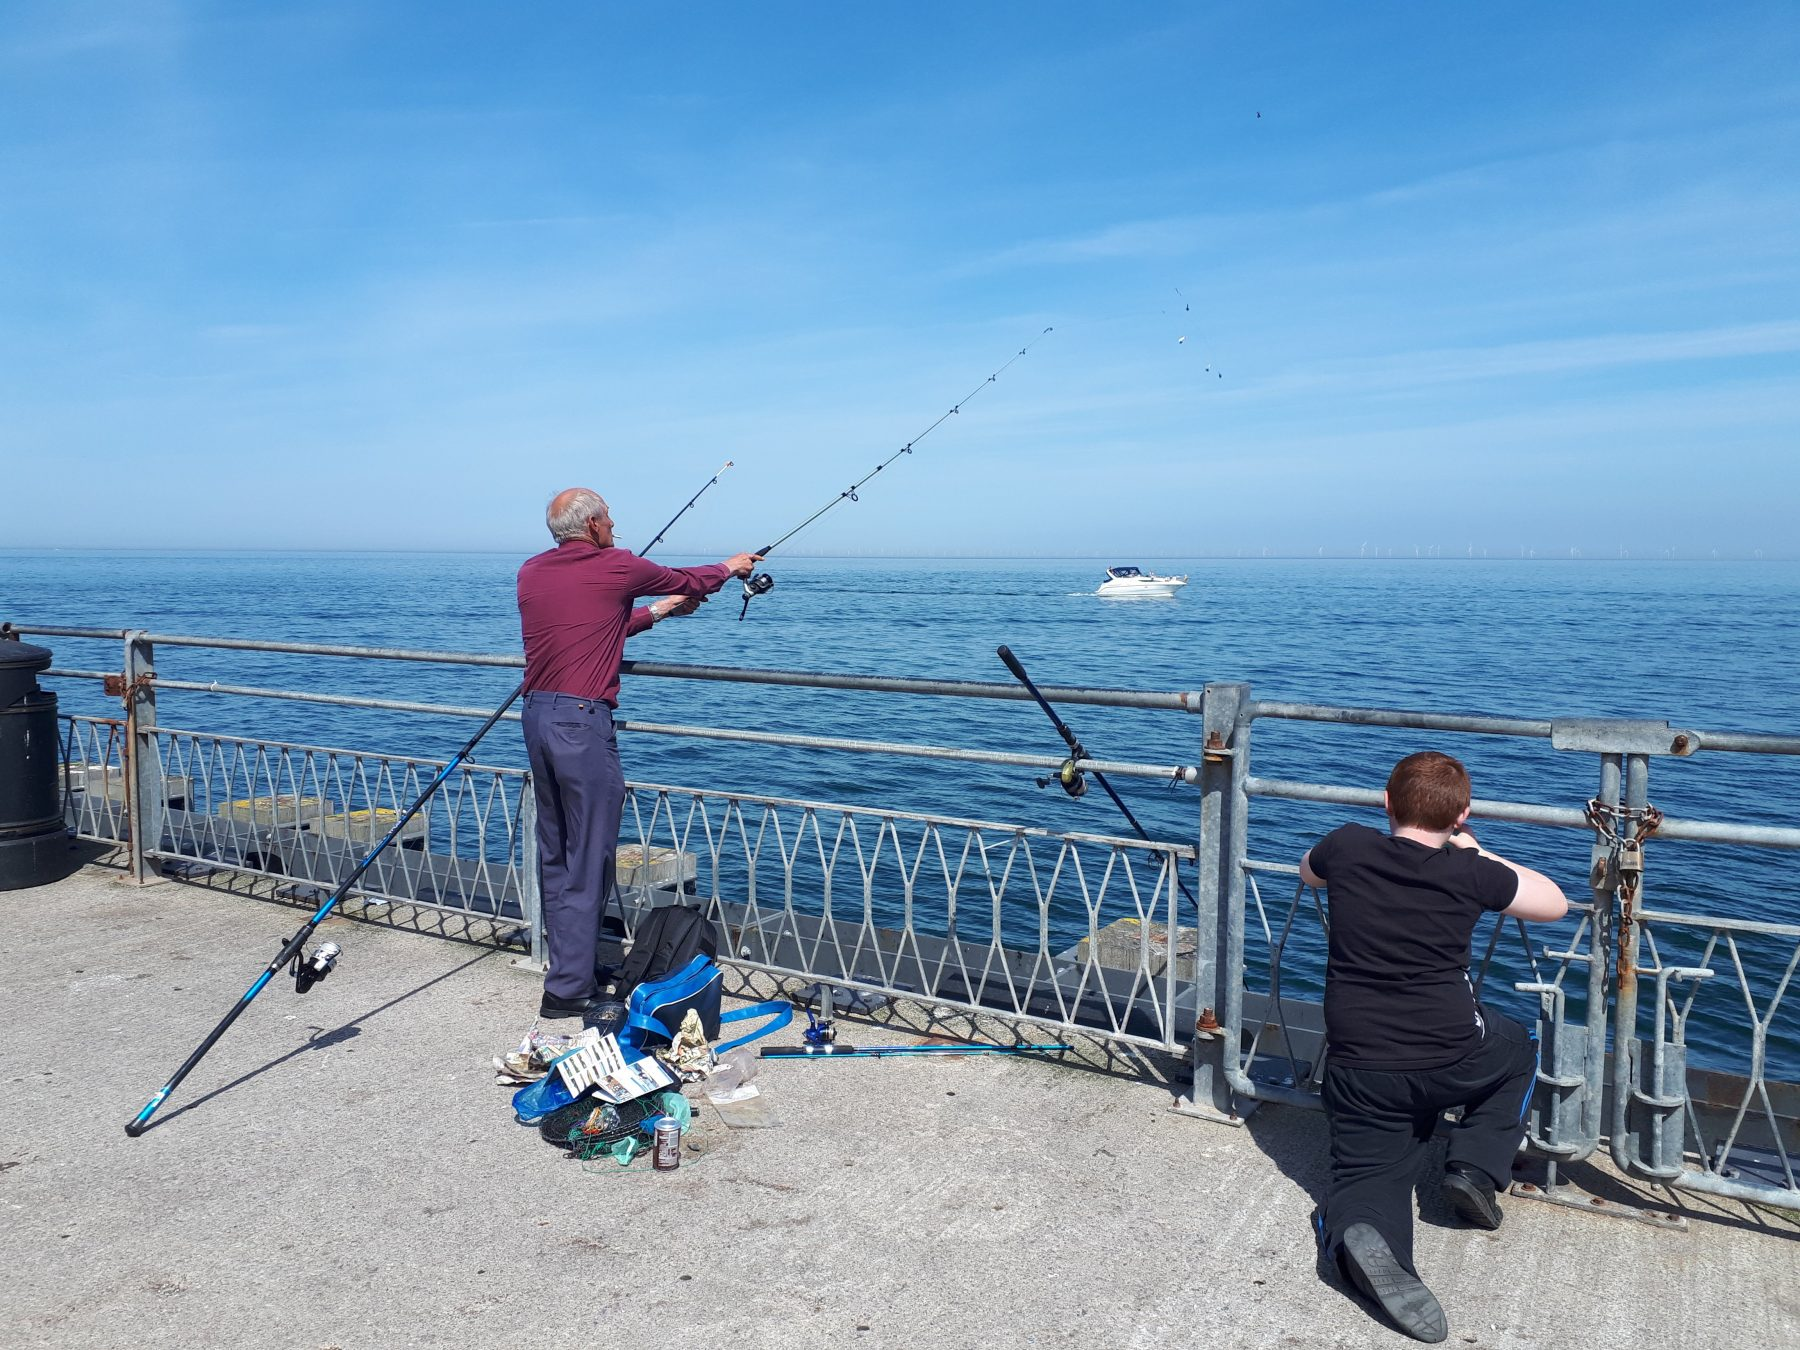 A man and boy fishing from Llandudno Pier